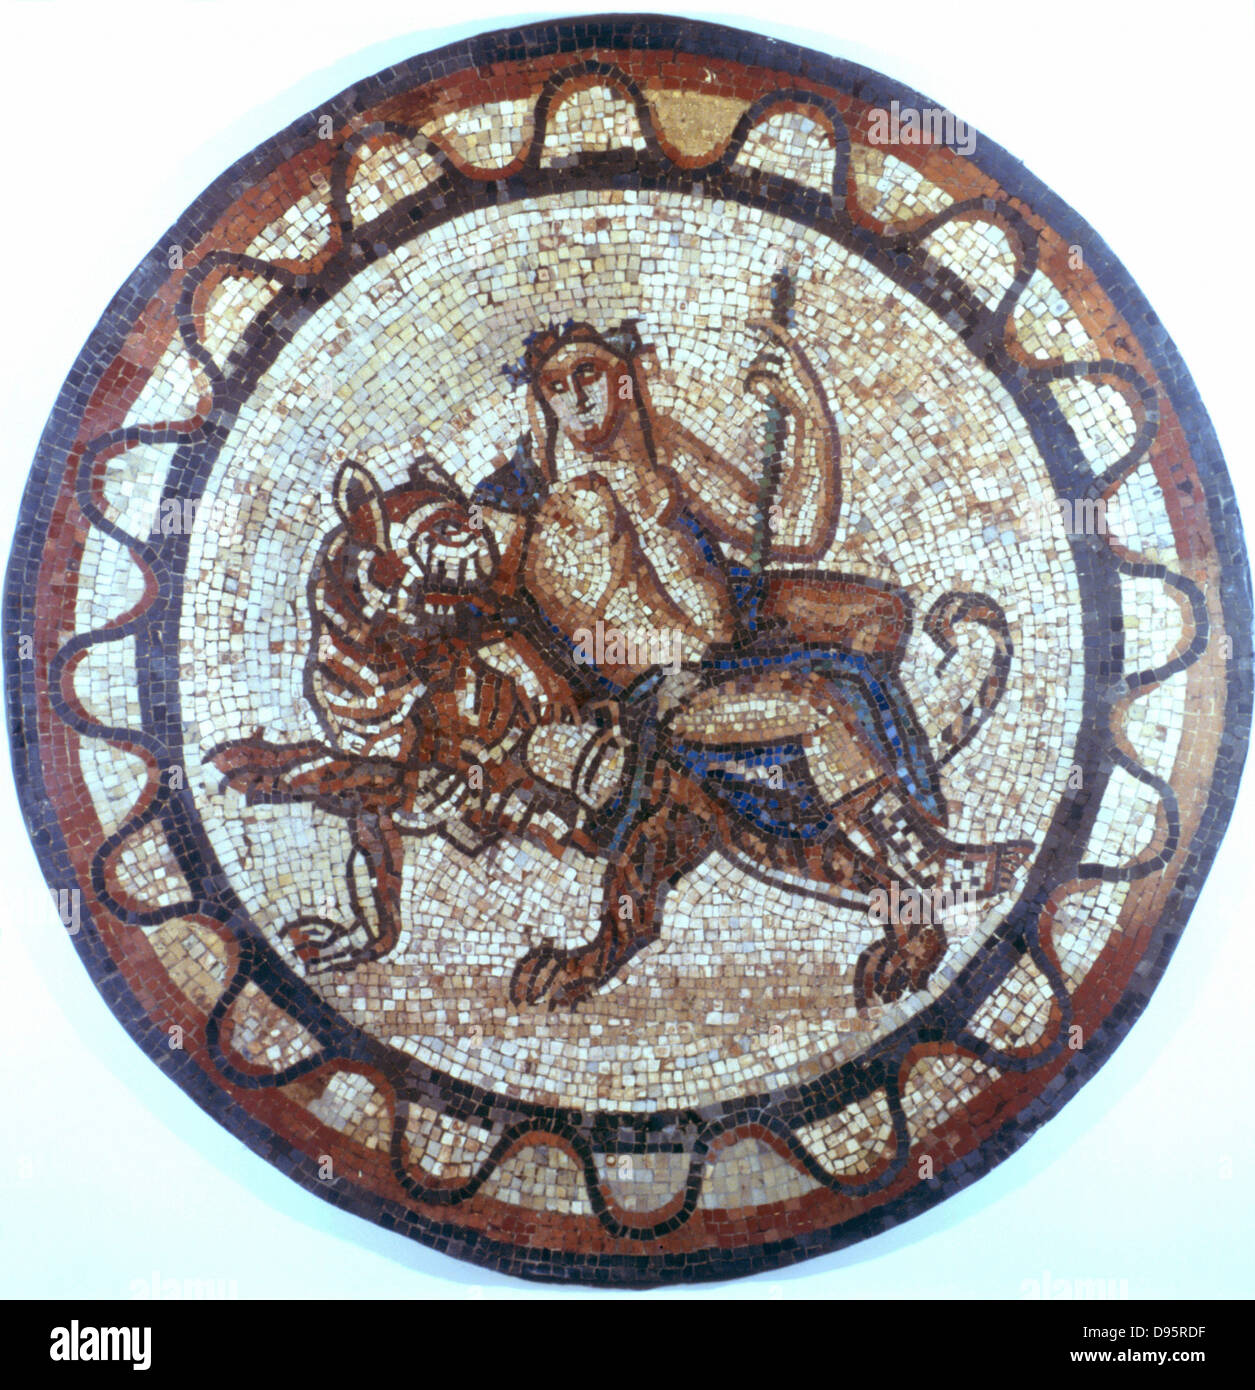 Bacchus, Ancient Roman god of Wine (Dionysius in Greek pantheon) riding on a tiger. Roman mosaic of 1st or 2nd century - Stock Image